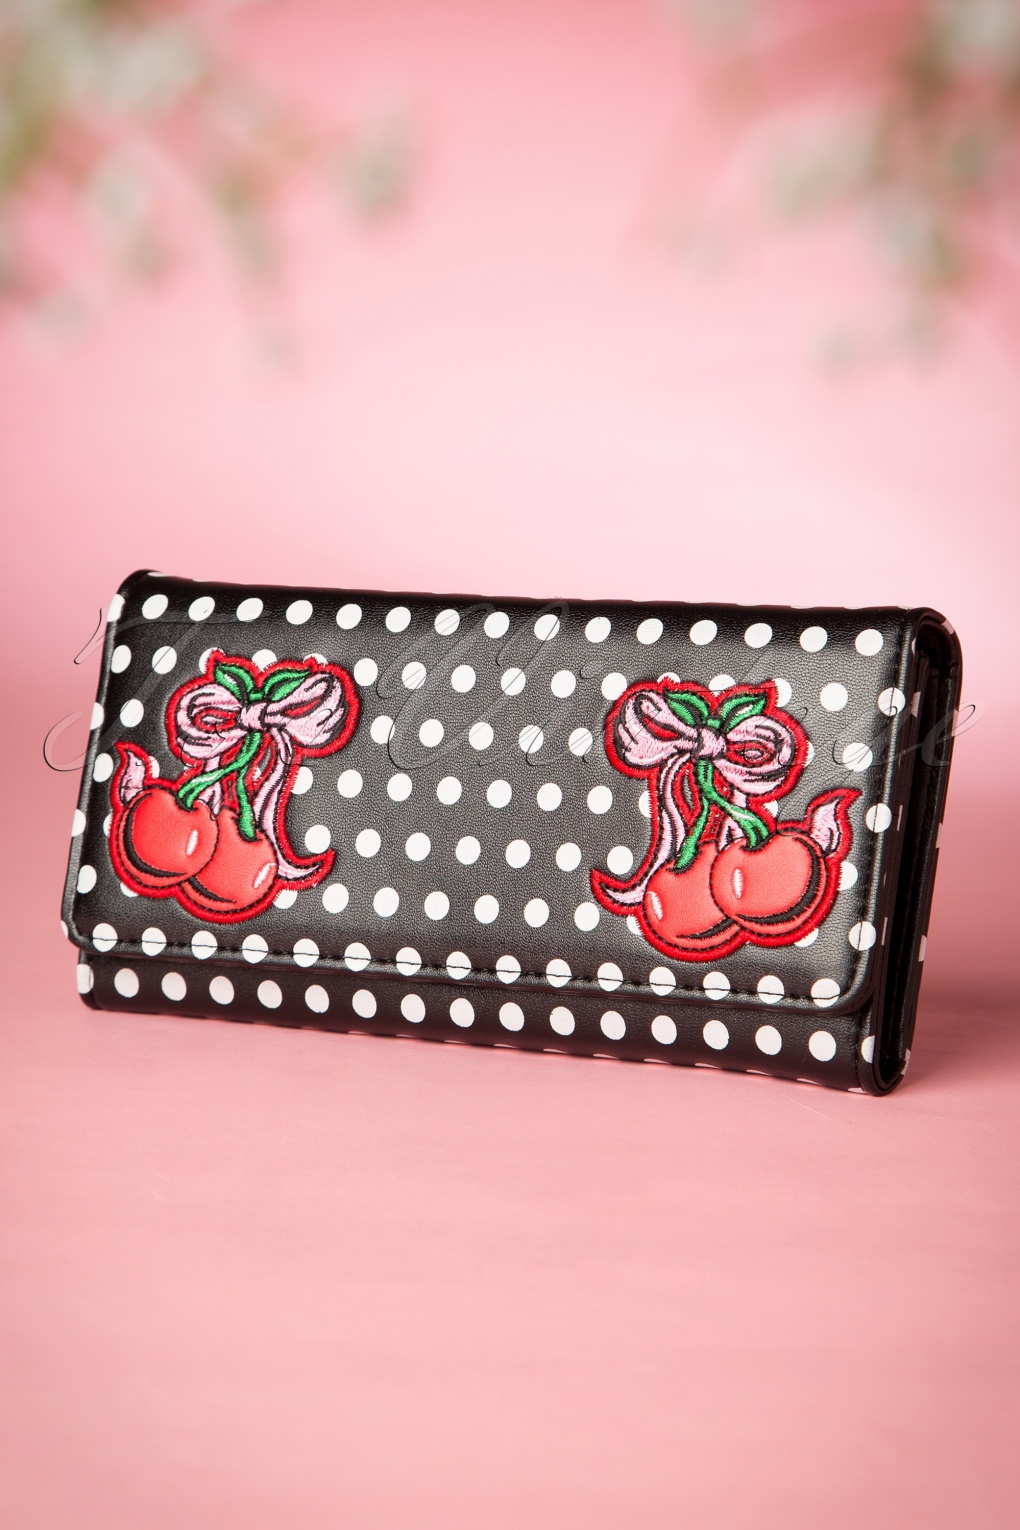 Retro Handbags, Purses, Wallets, Bags 50s Lucille Cherry Polka Purse in Black £23.56 AT vintagedancer.com